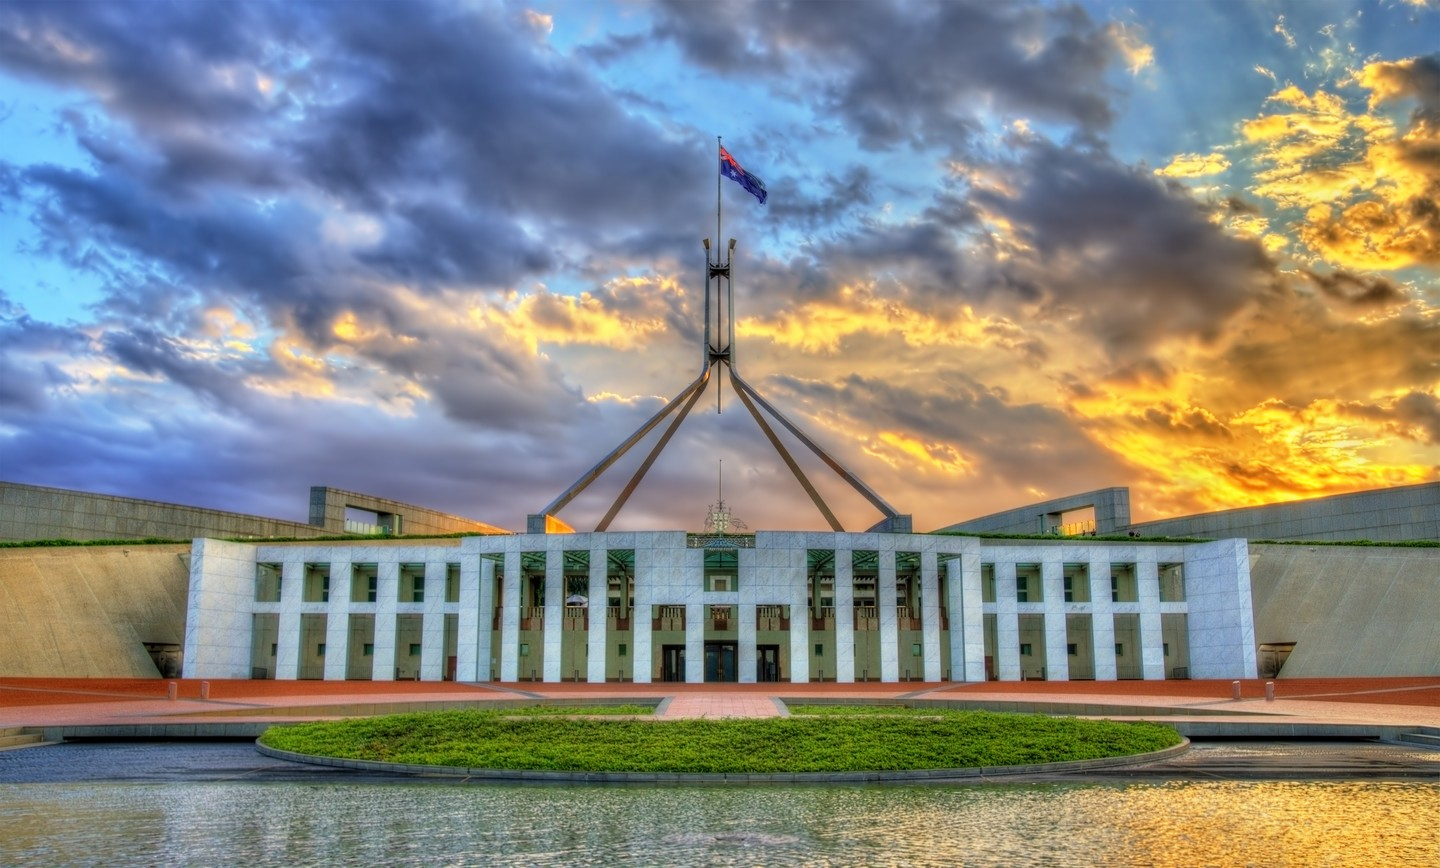 Parliament House in Canberra, Australia